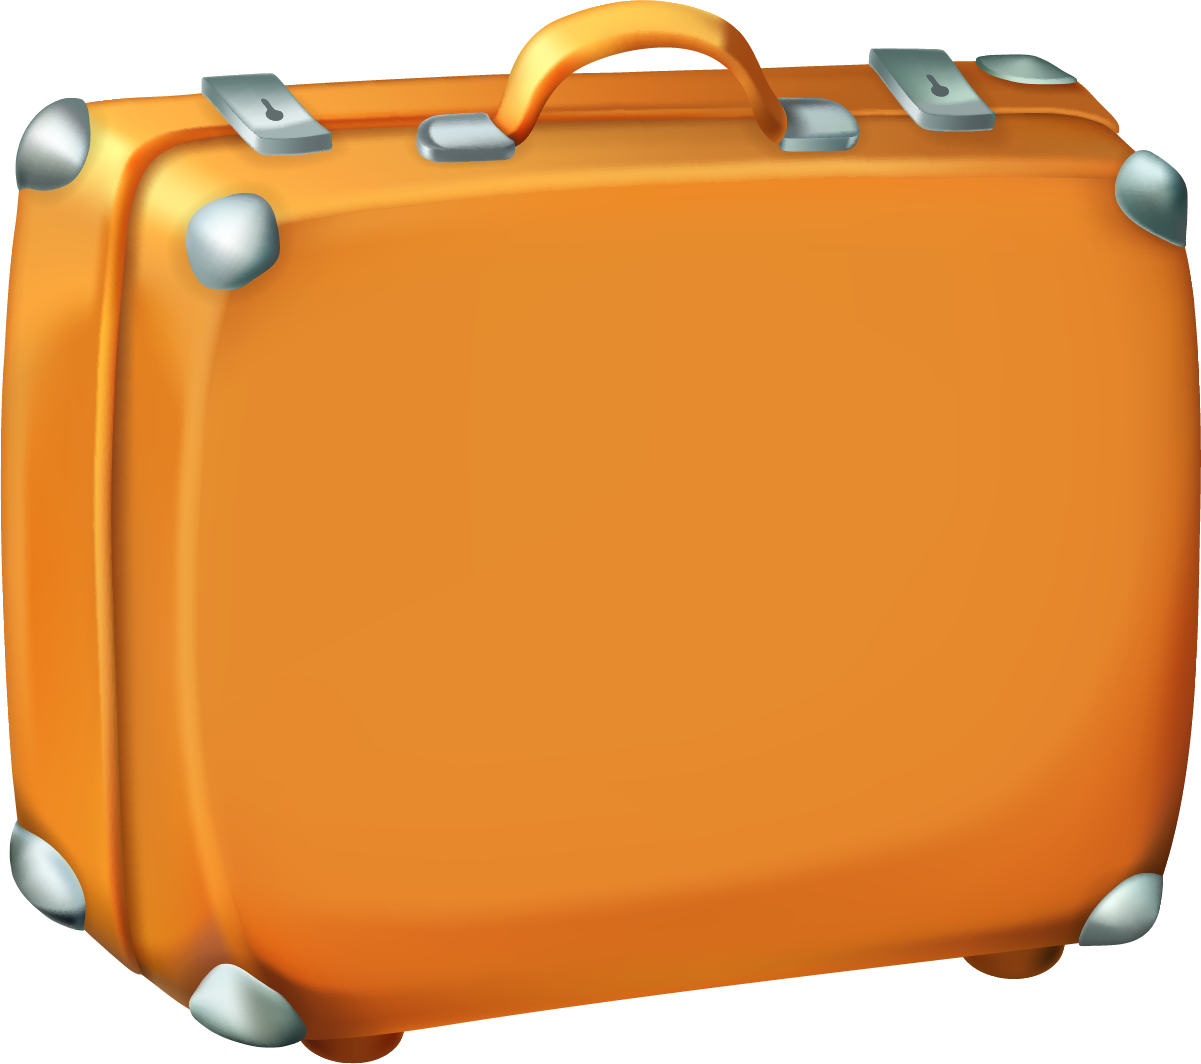 Baggage travel clip art. Luggage clipart suitcase handle